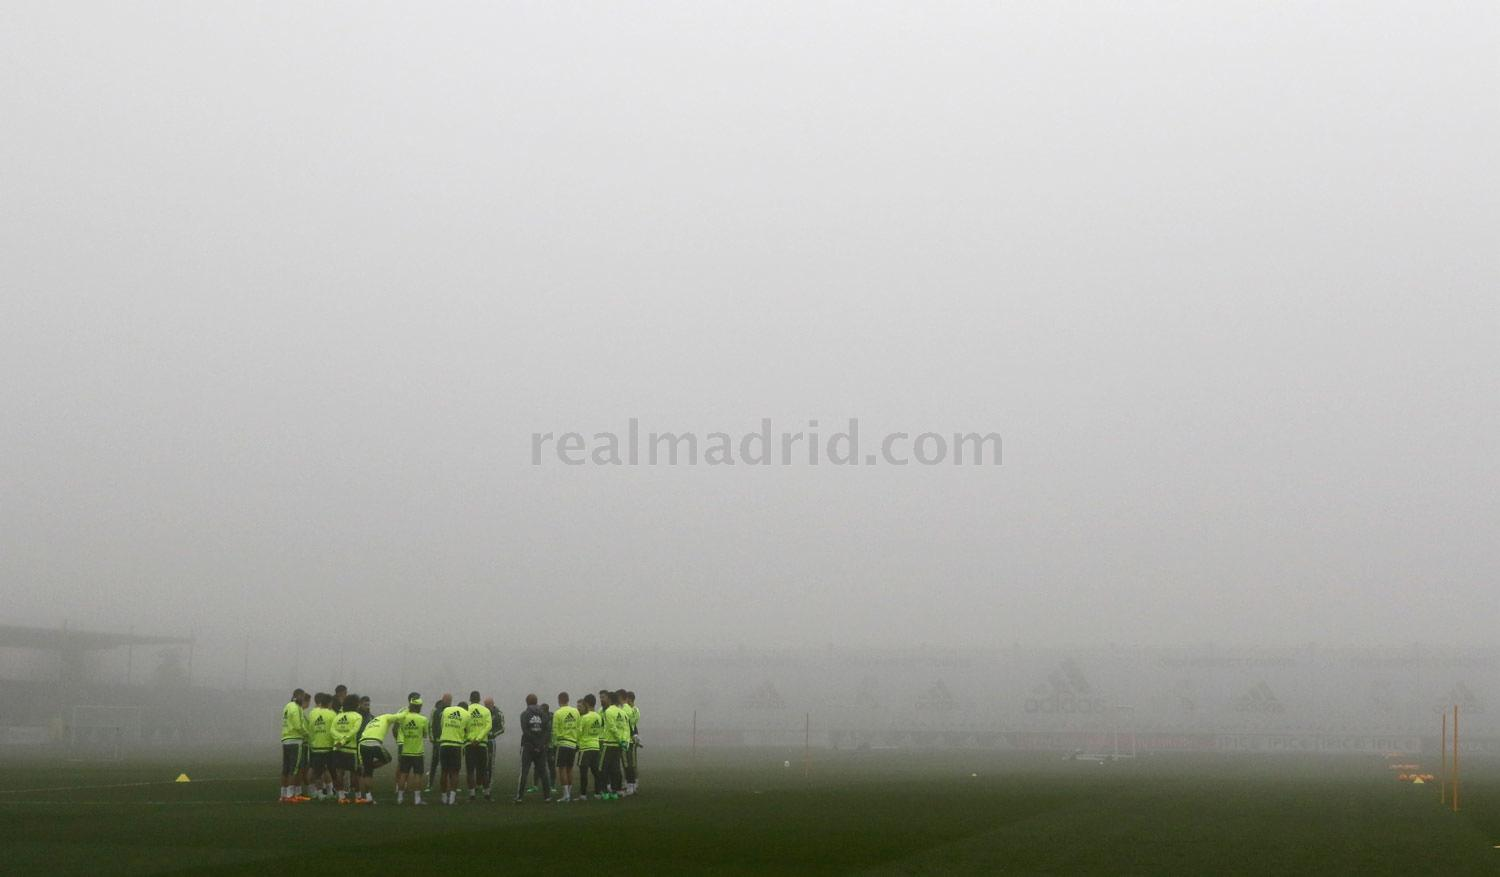 Real Madrid - Entrenamiento del Real Madrid - 27-01-2016